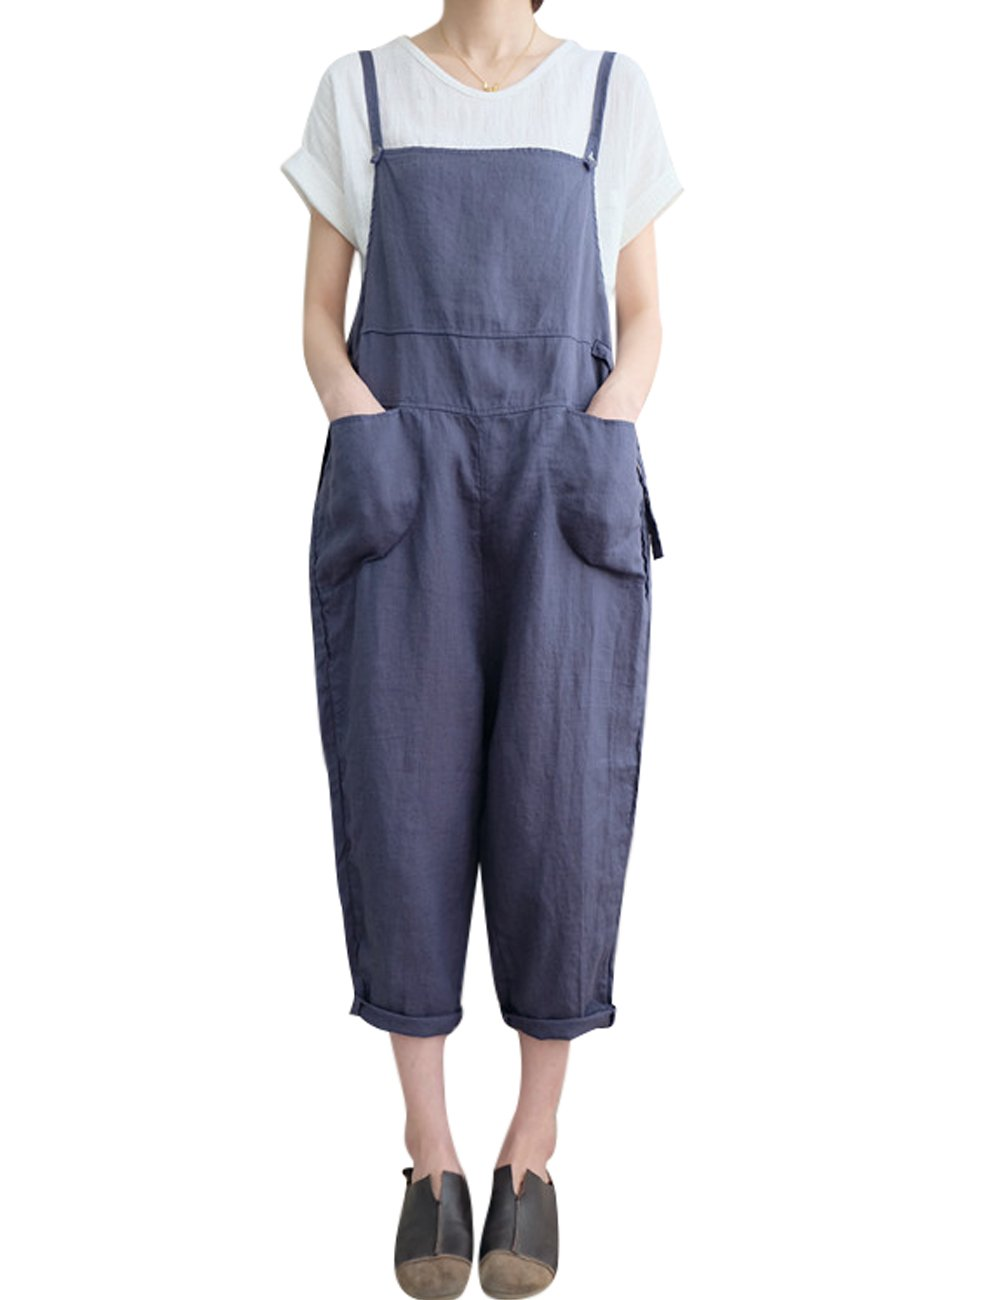 Youlee Women's Summer Wide Leg Jumpsuits Linen Dungarees Youlee-0903-3